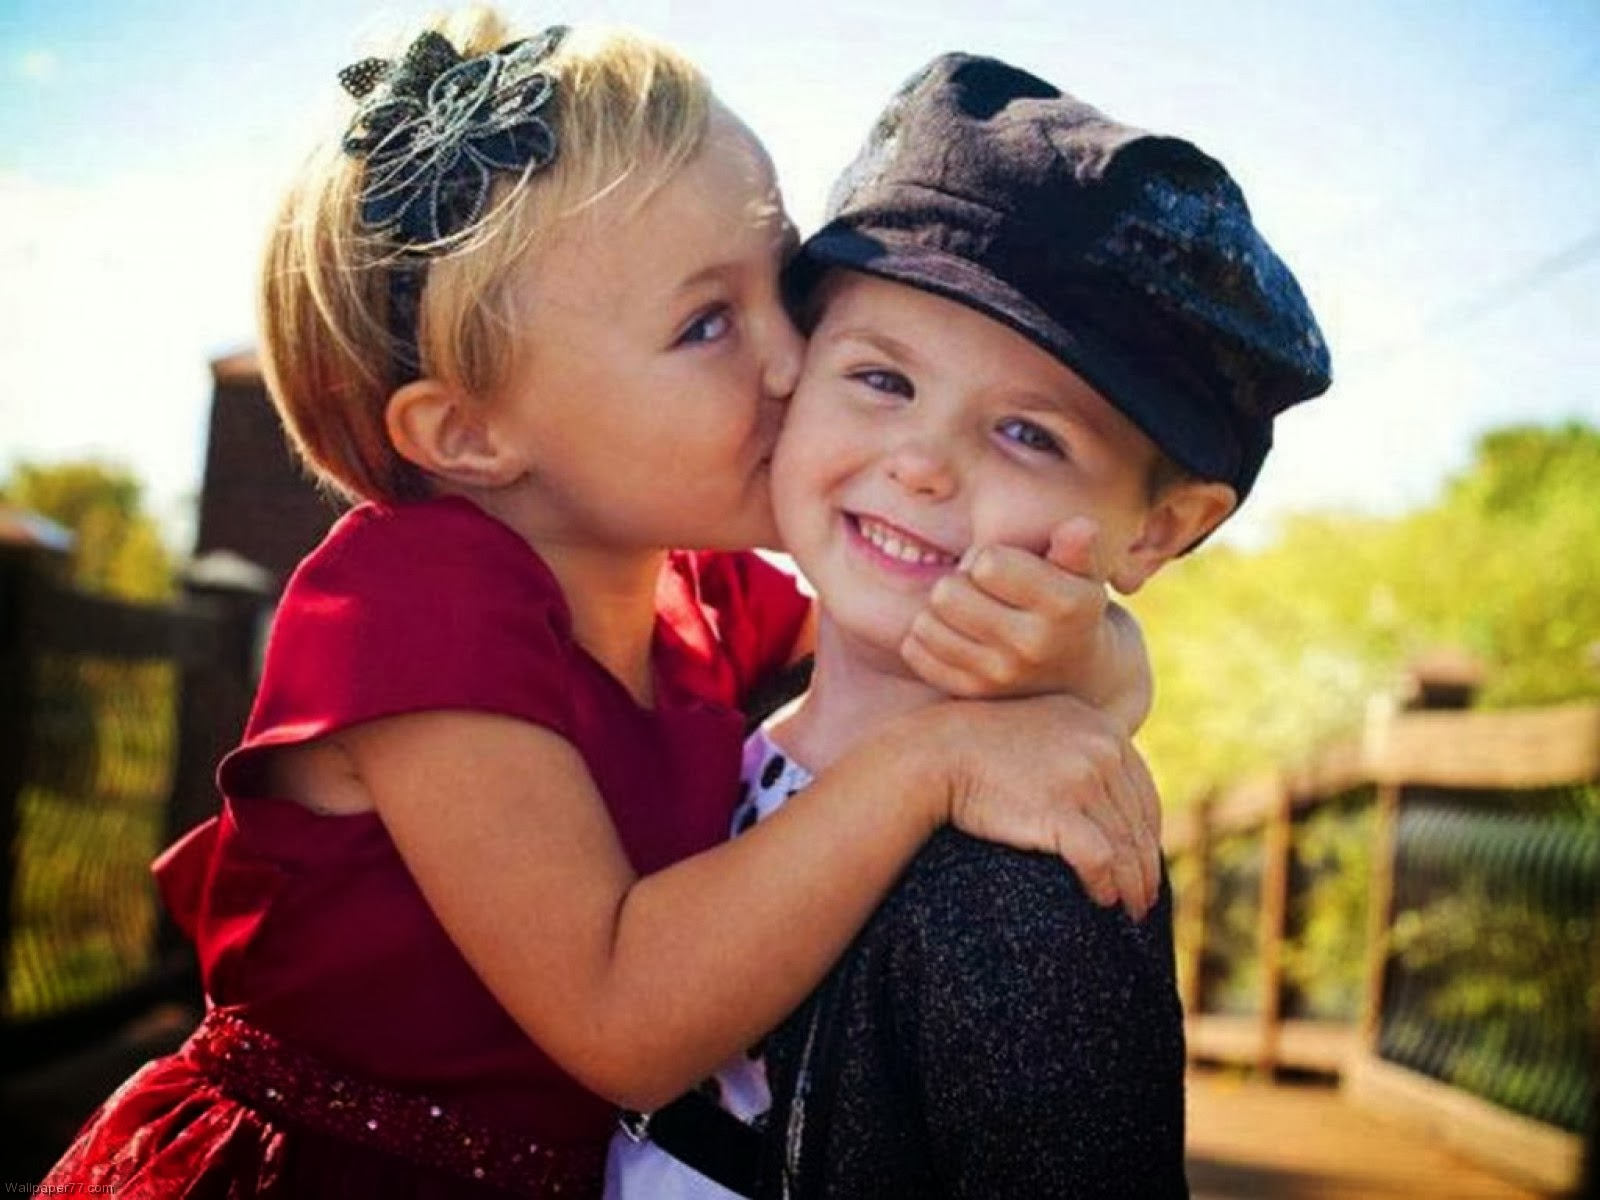 Fabulous Wallpapers Happy Kiss Day 2014 Hd Wallpapers